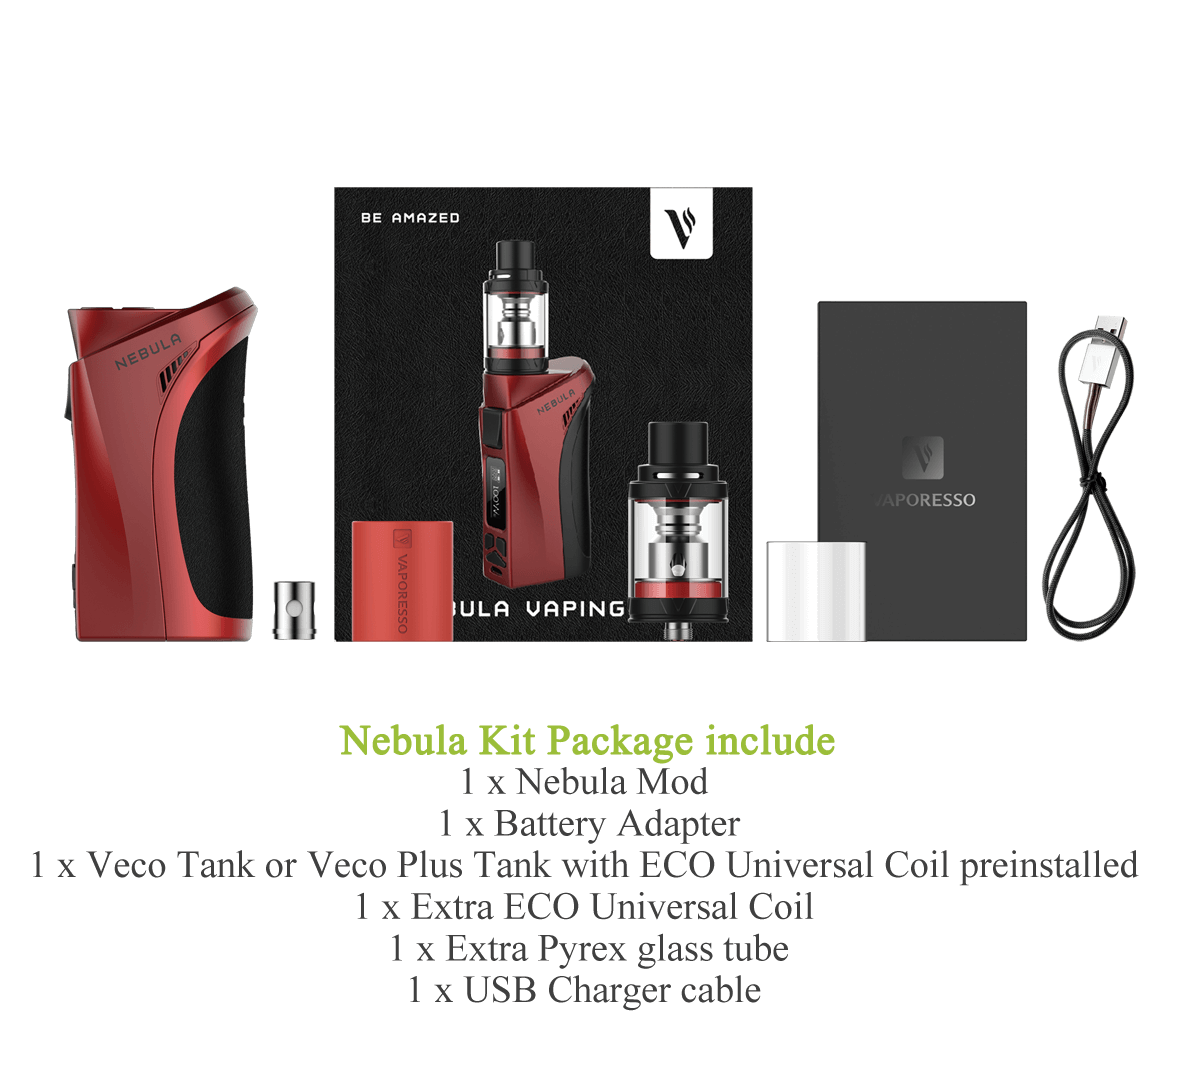 nebula_kit_package_vaporesso.png